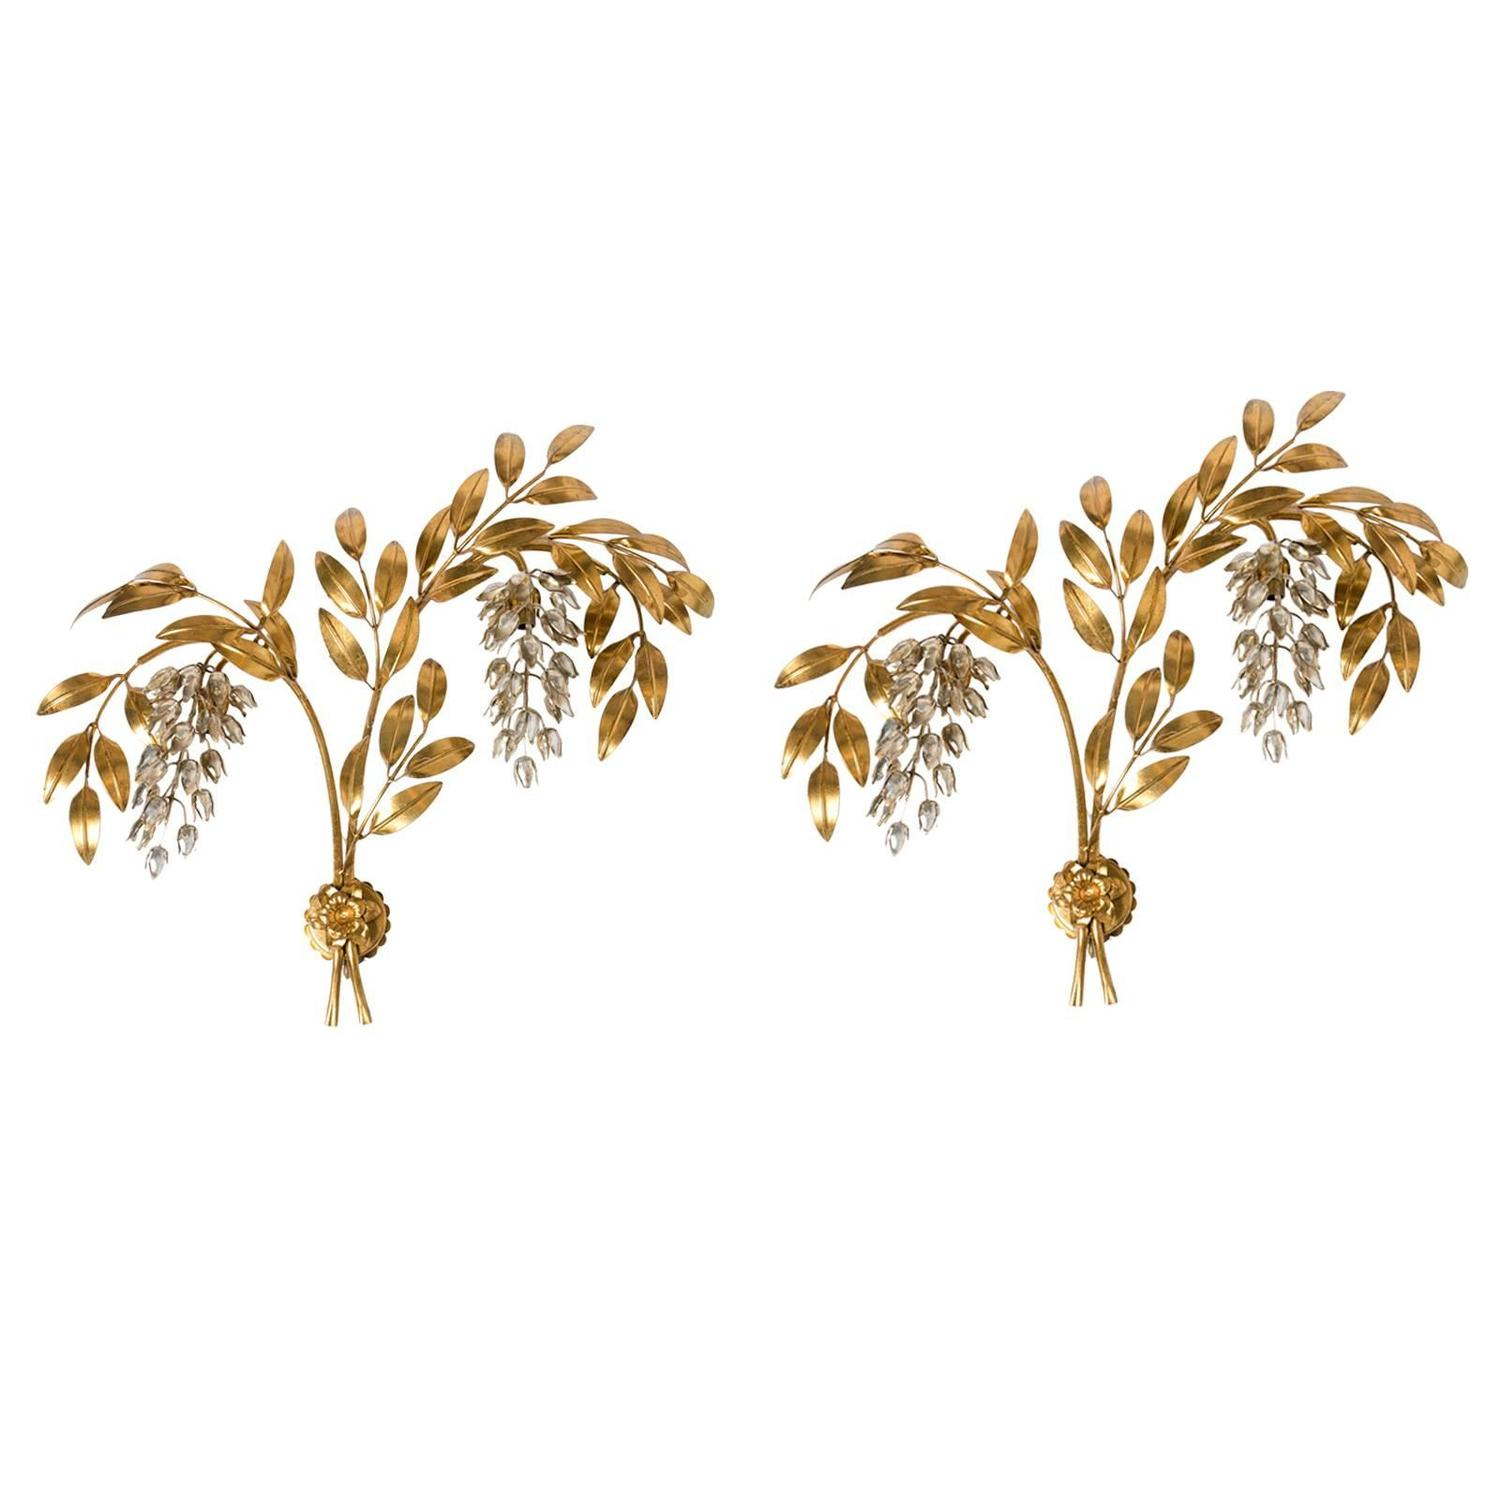 Set of extra large hans kogl gilt metal palm tree wall light set of extra large hans kogl gilt metal palm tree wall light sconce germany for sale at 1stdibs amipublicfo Image collections